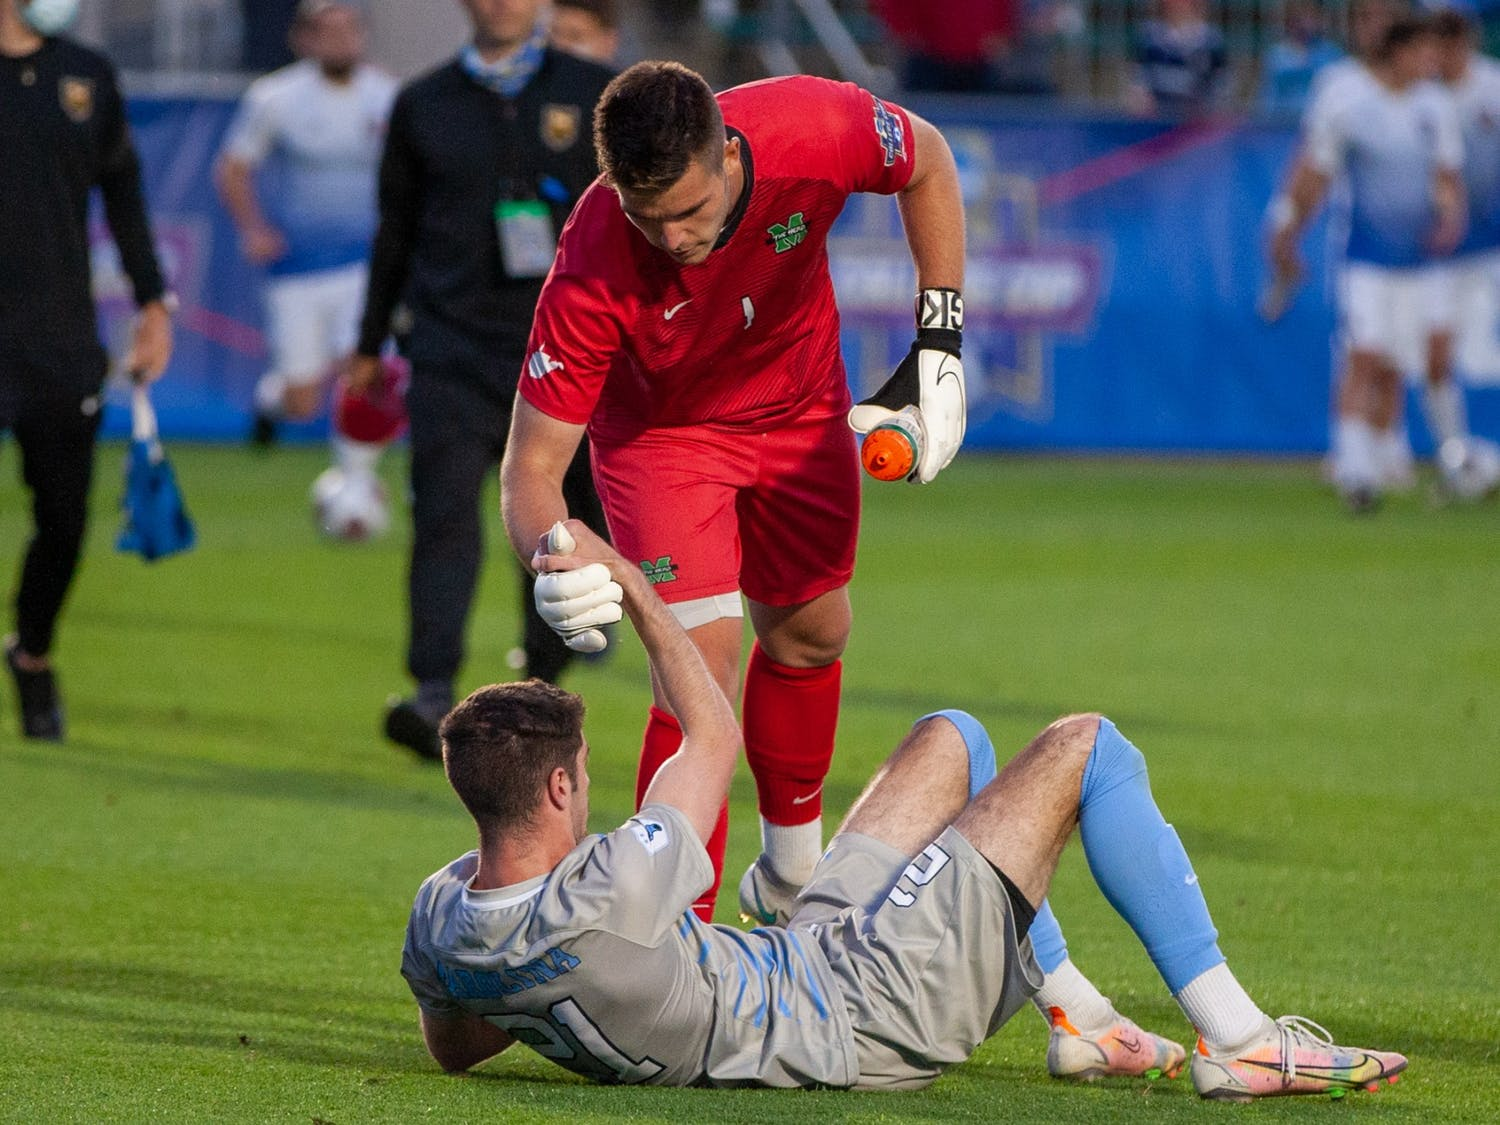 Marshall junior goalkeeper Oliver Semmle (1) gives a hand to UNC senior forawrd Alex Rose (21) after the semifinals of the College Cup against Marshall at the WakeMed Soccer Park in Cary, NC on Friday May 14, 2021. The Tar Heels lost 1-0.